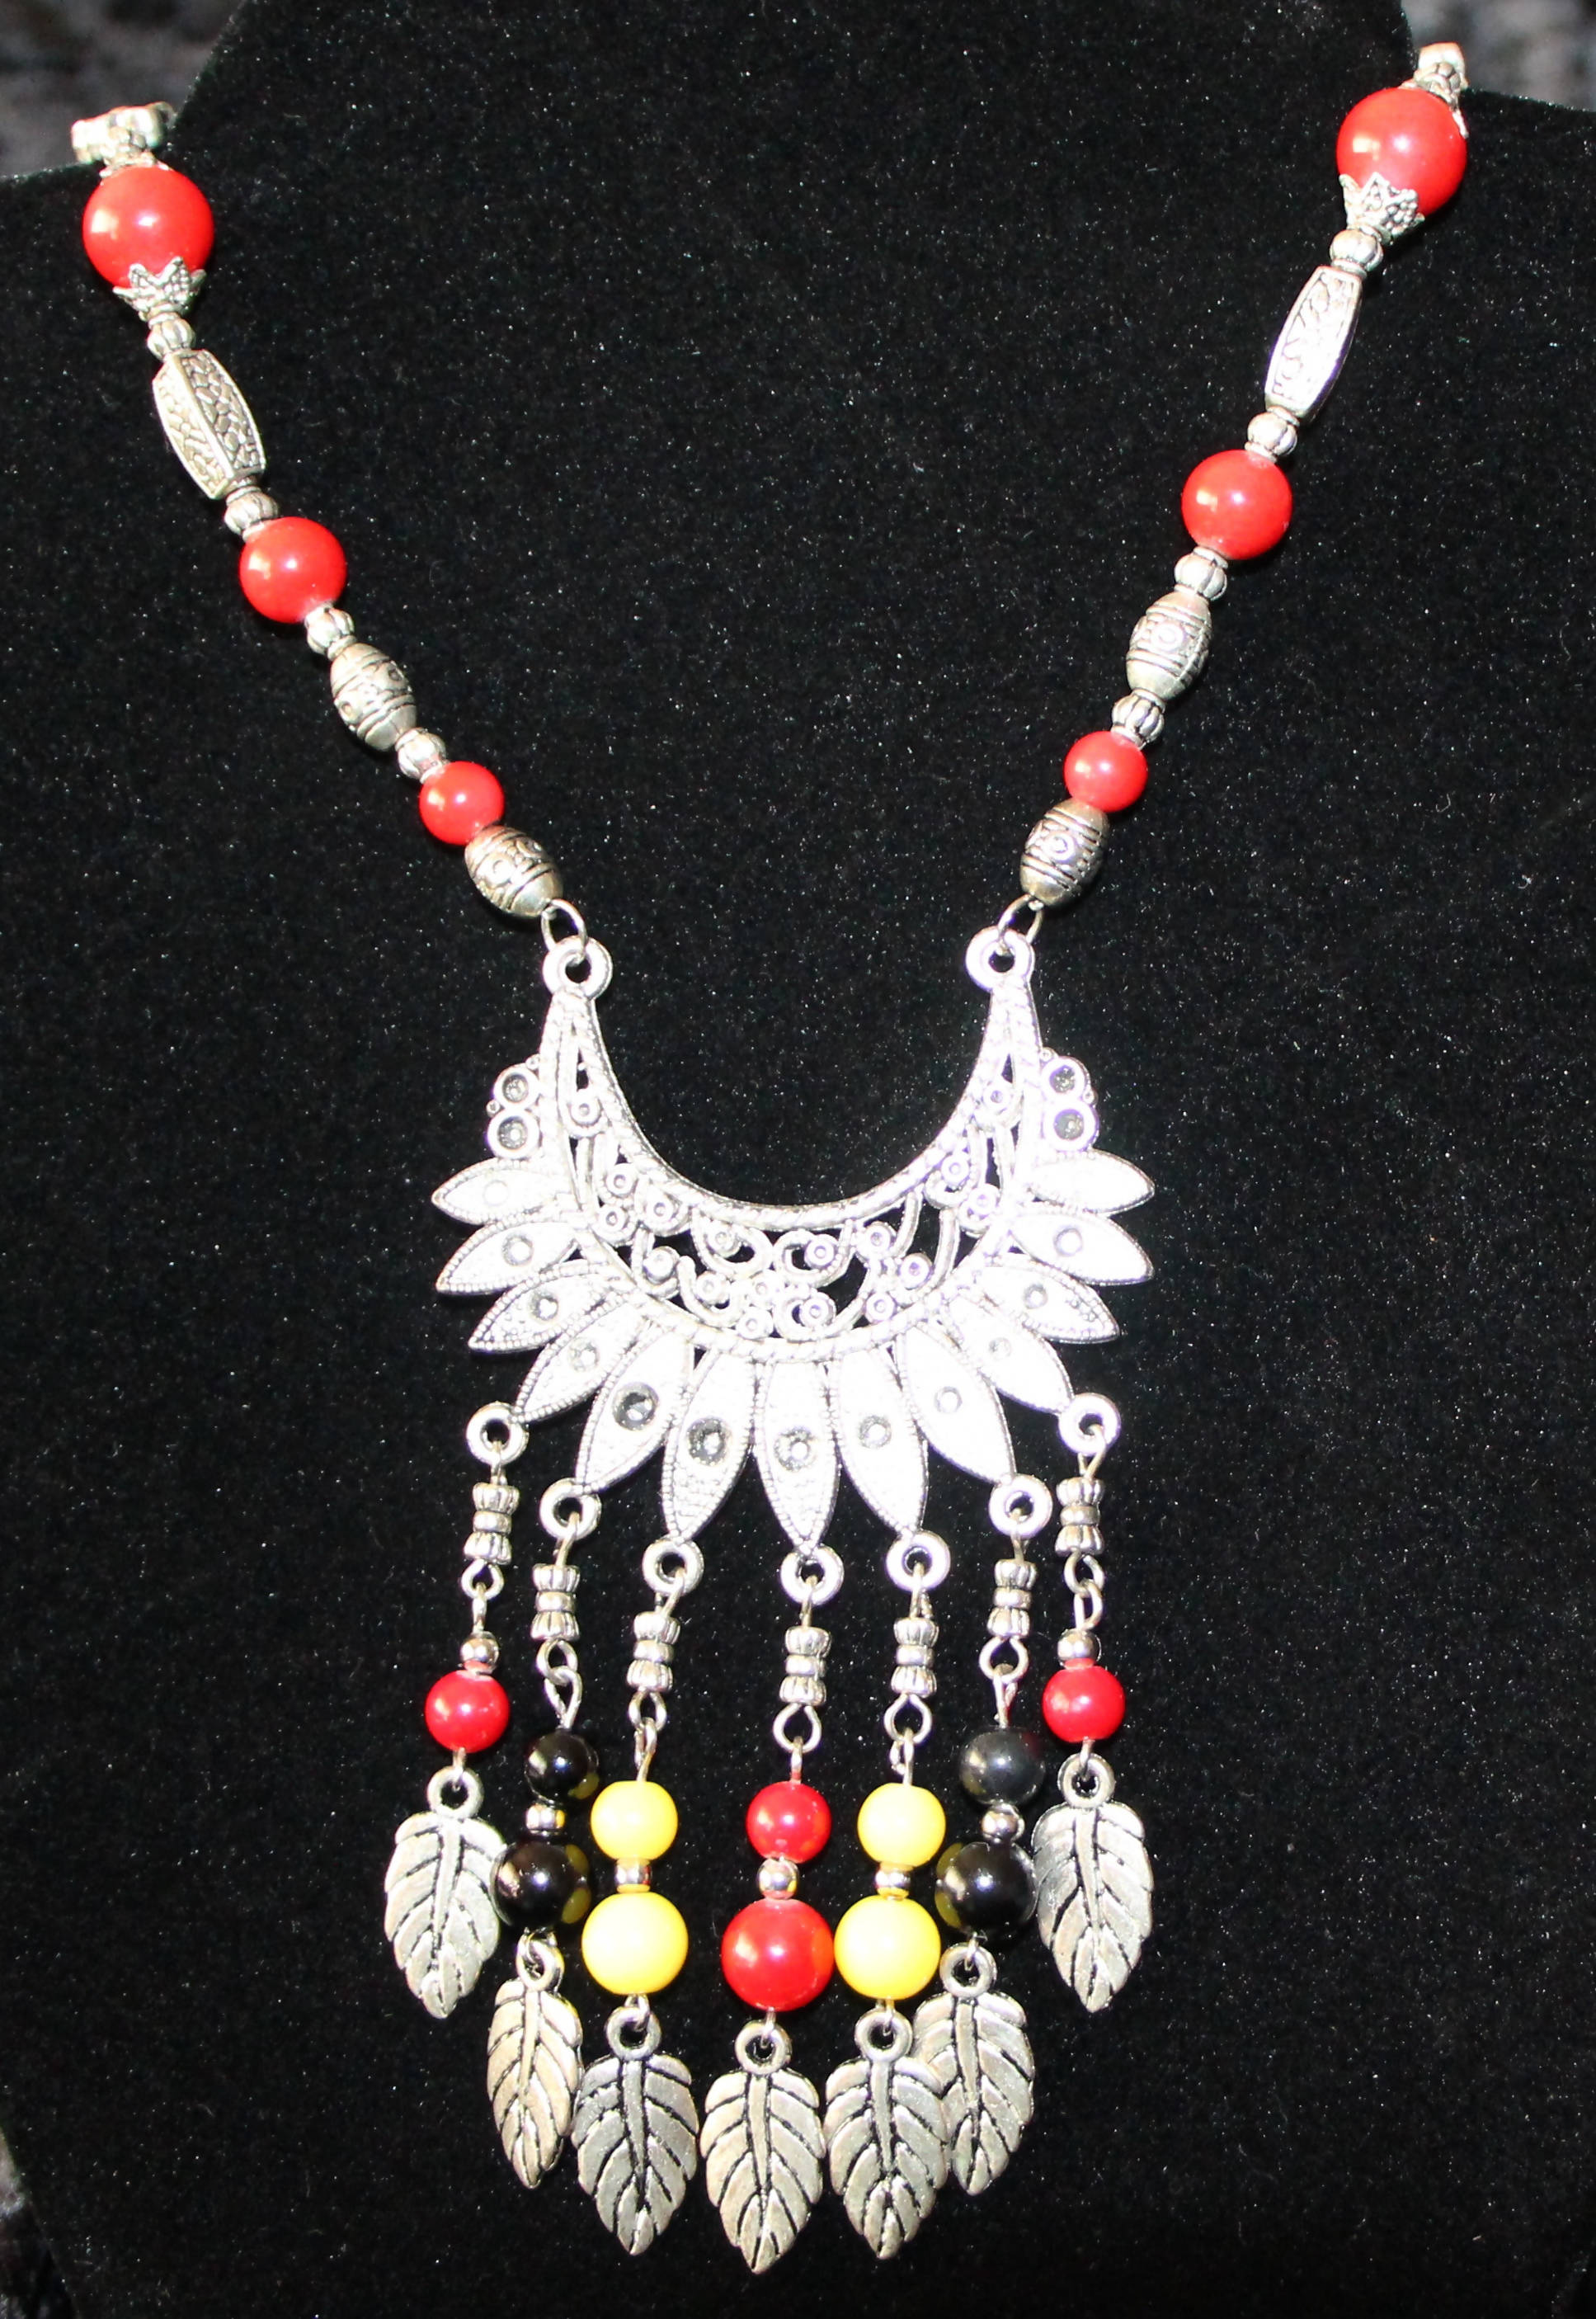 Tibetan Silver fan necklace